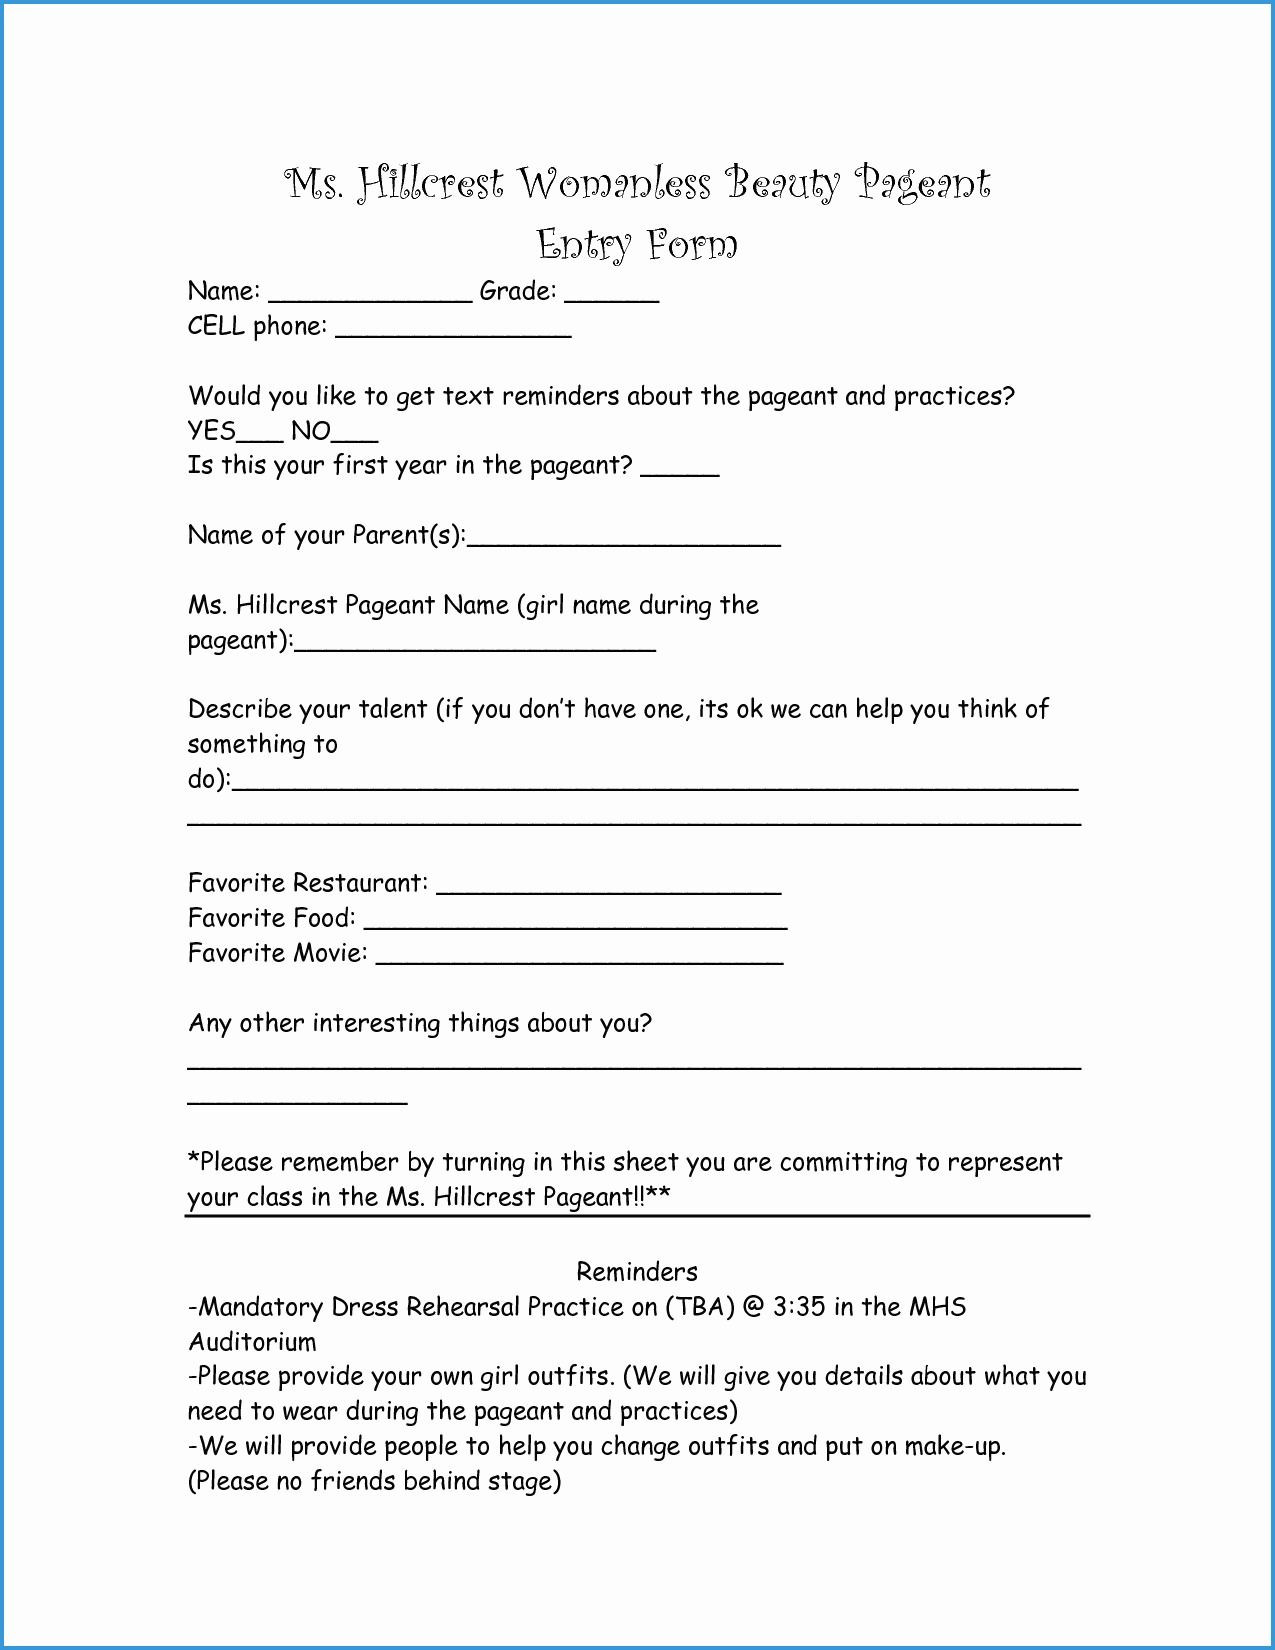 Free Printable Contest Entry form Template Great Beauty